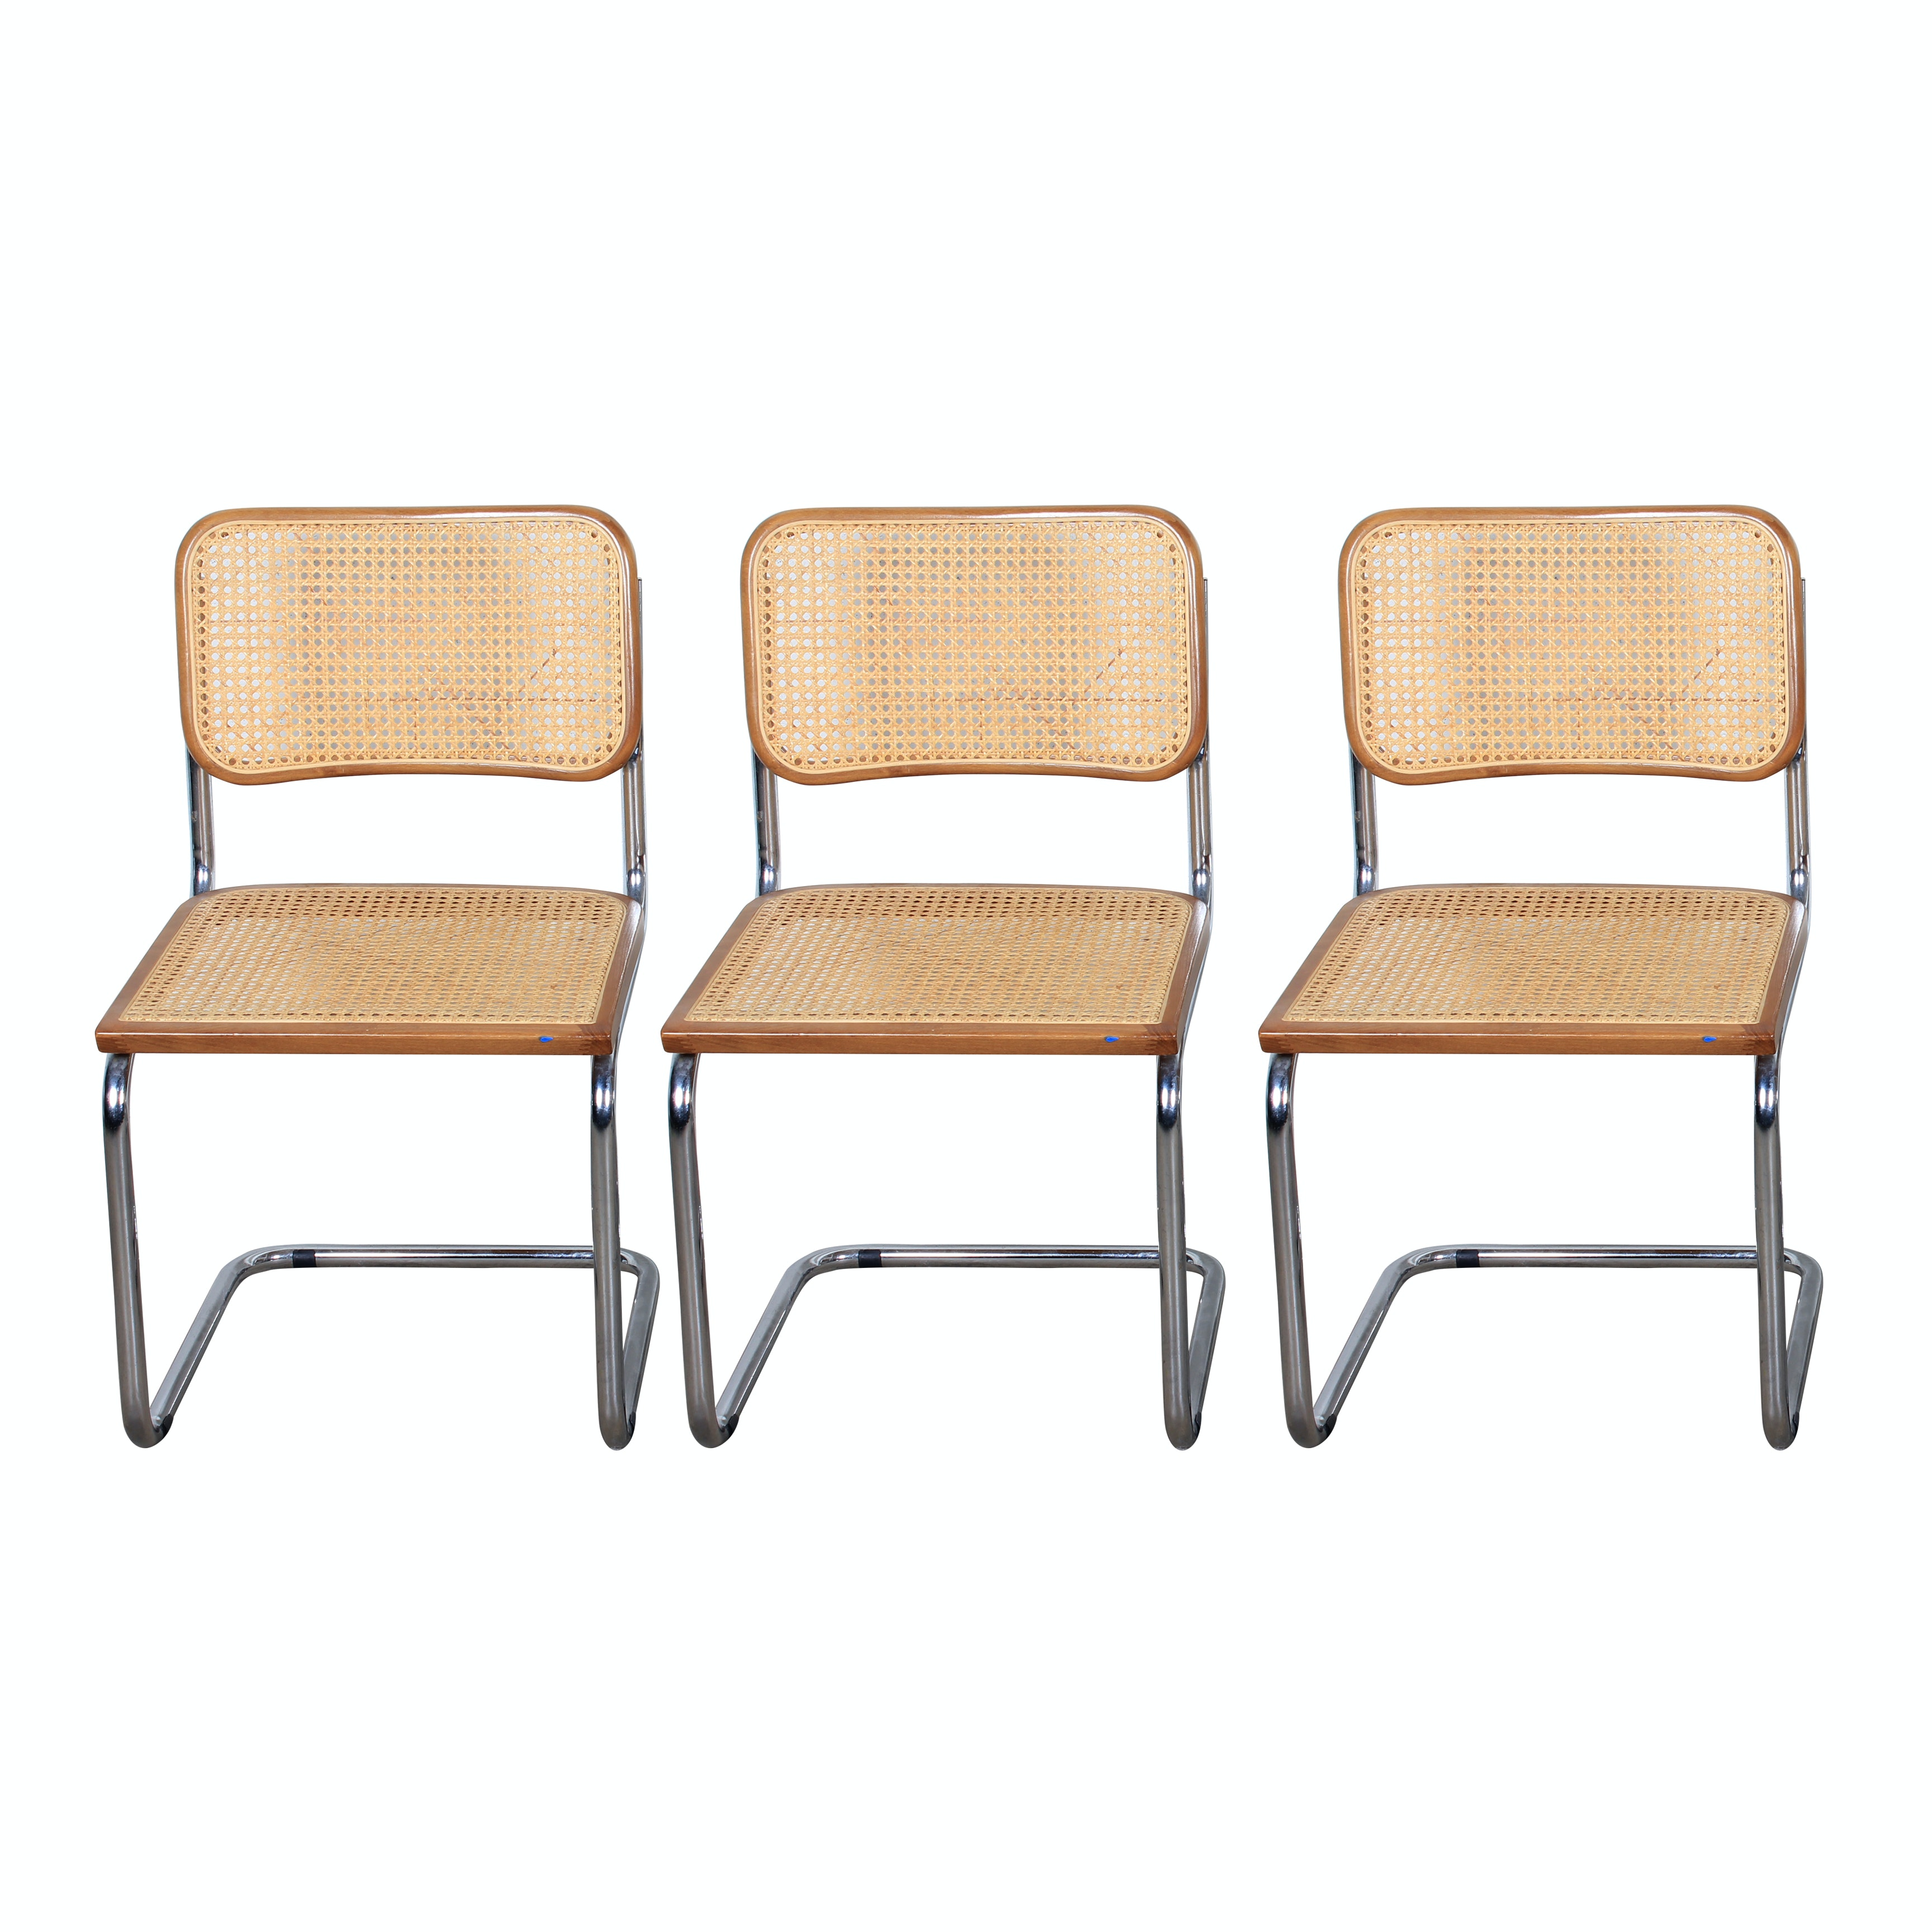 Three Marcel Breuer Style Mid Century Modern Cantilevered Chairs